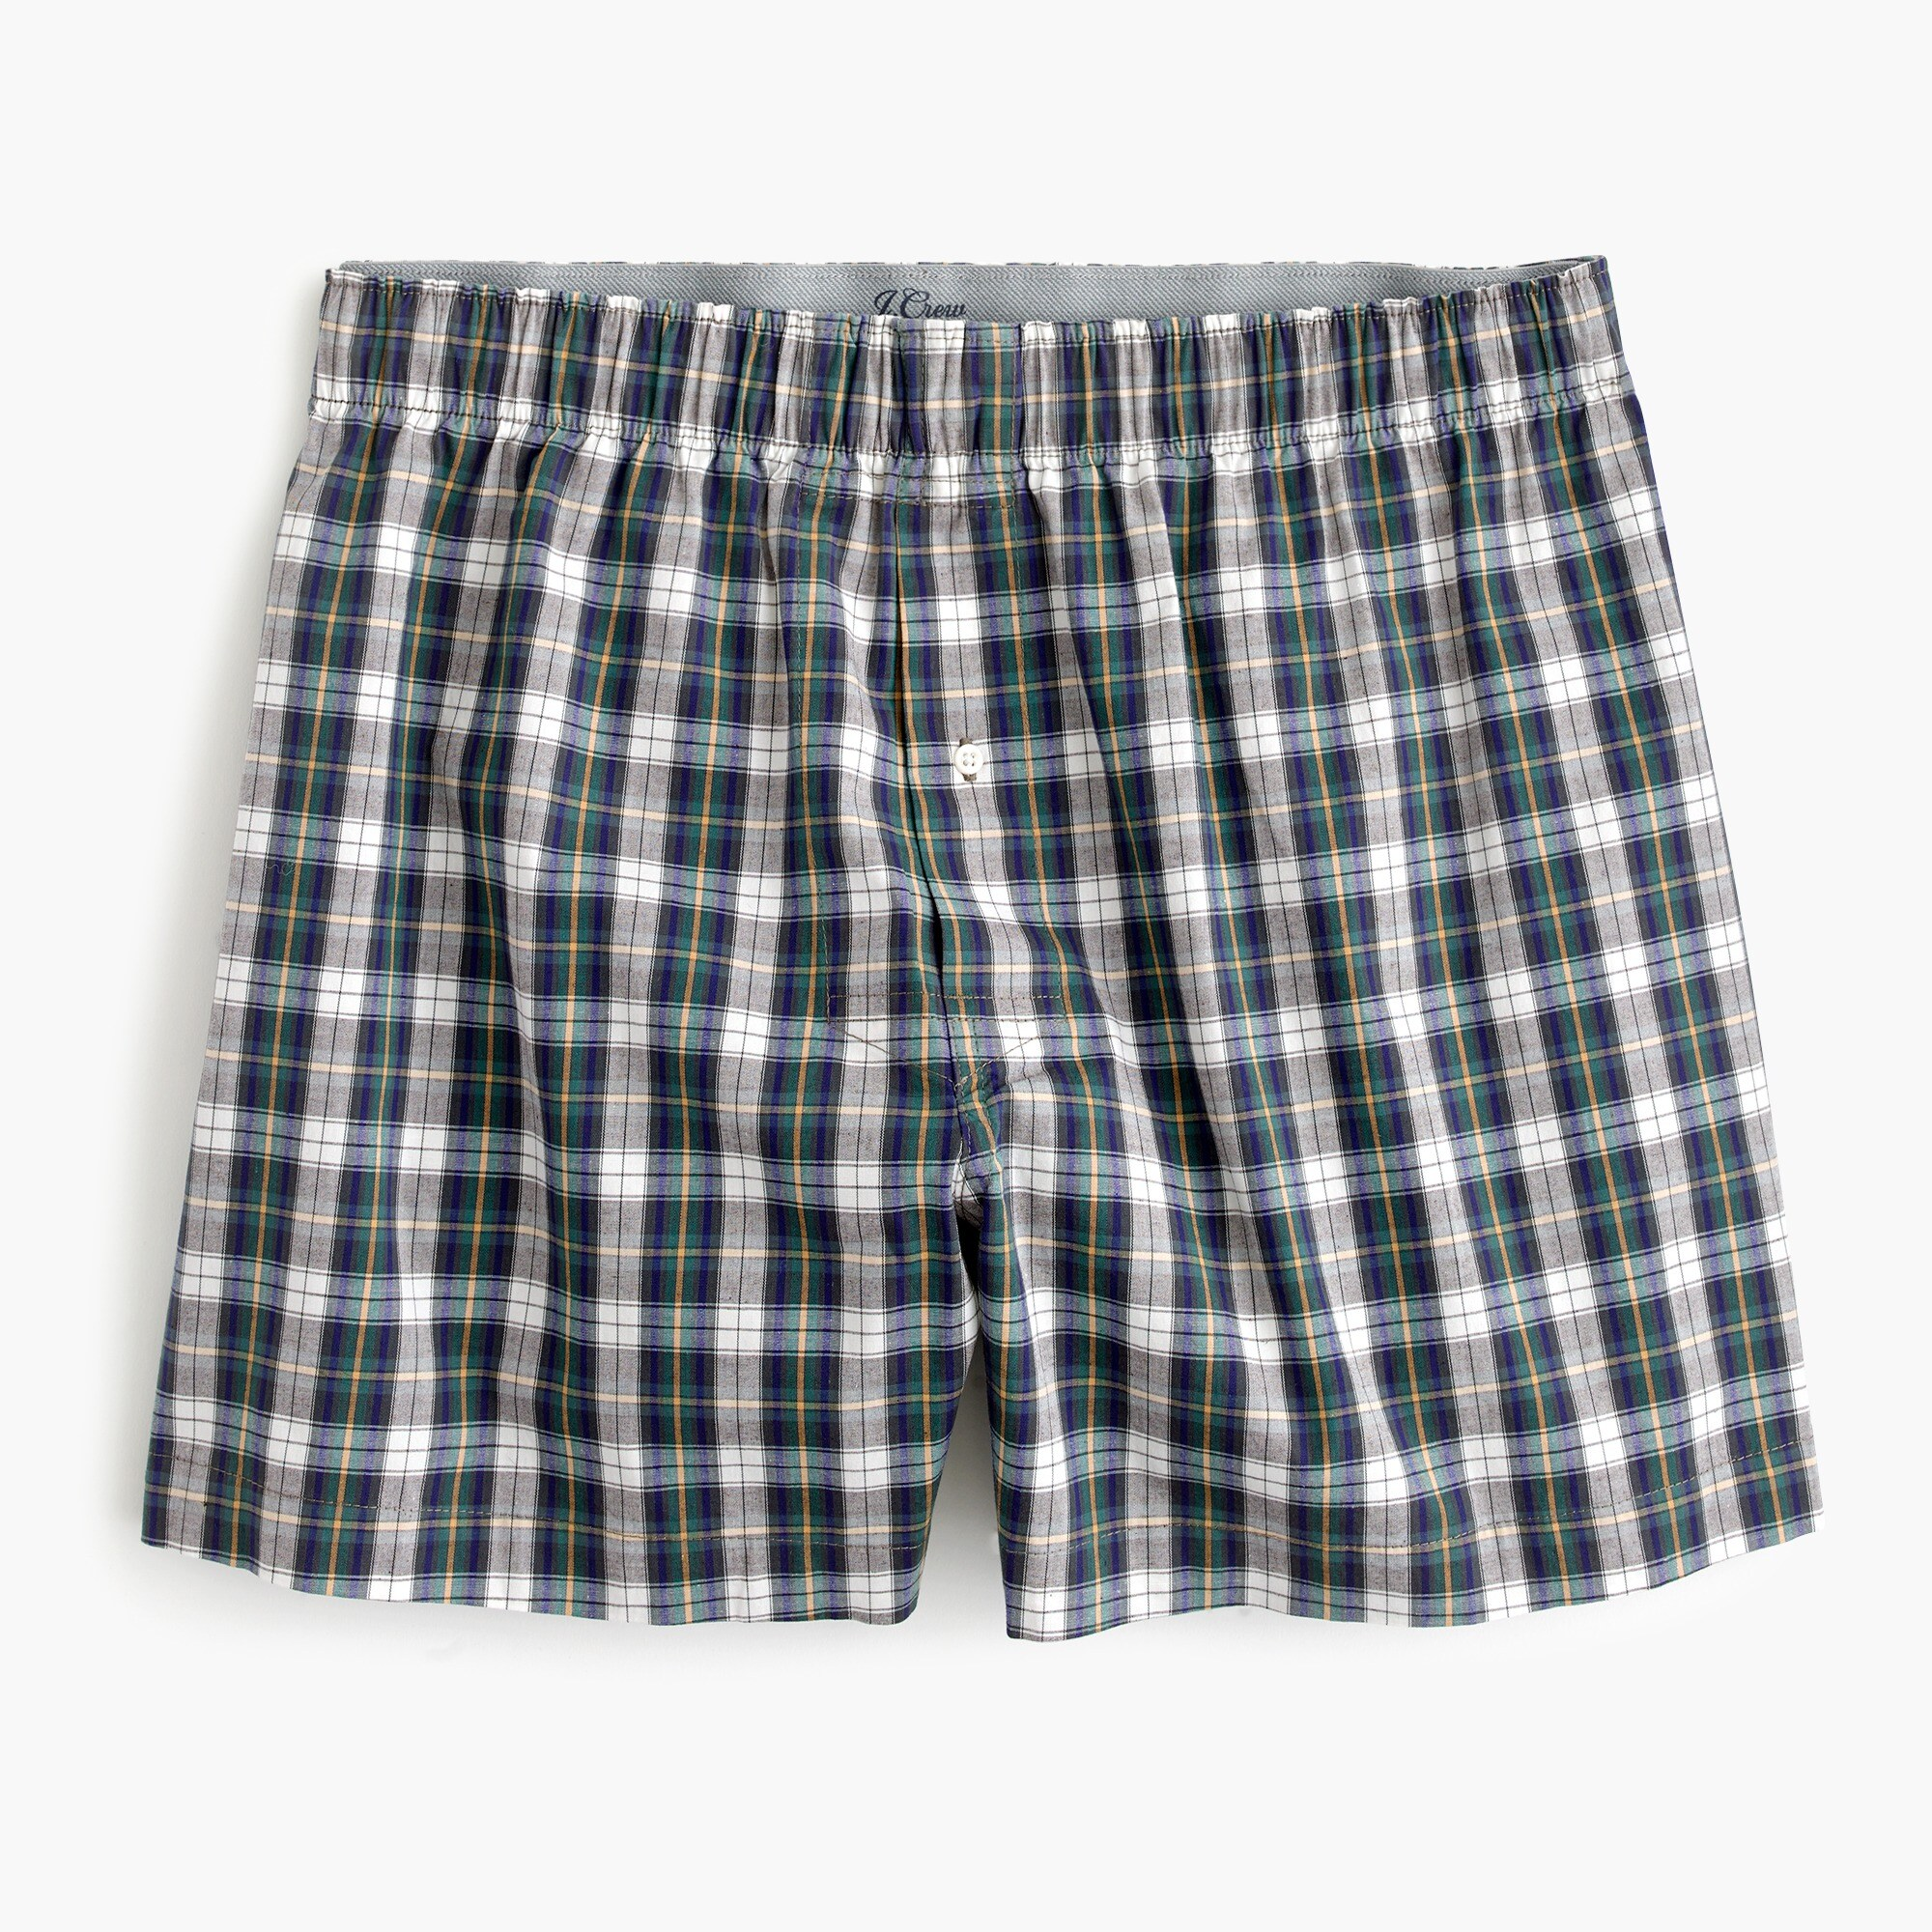 mens Stretch Darnell plaid boxers